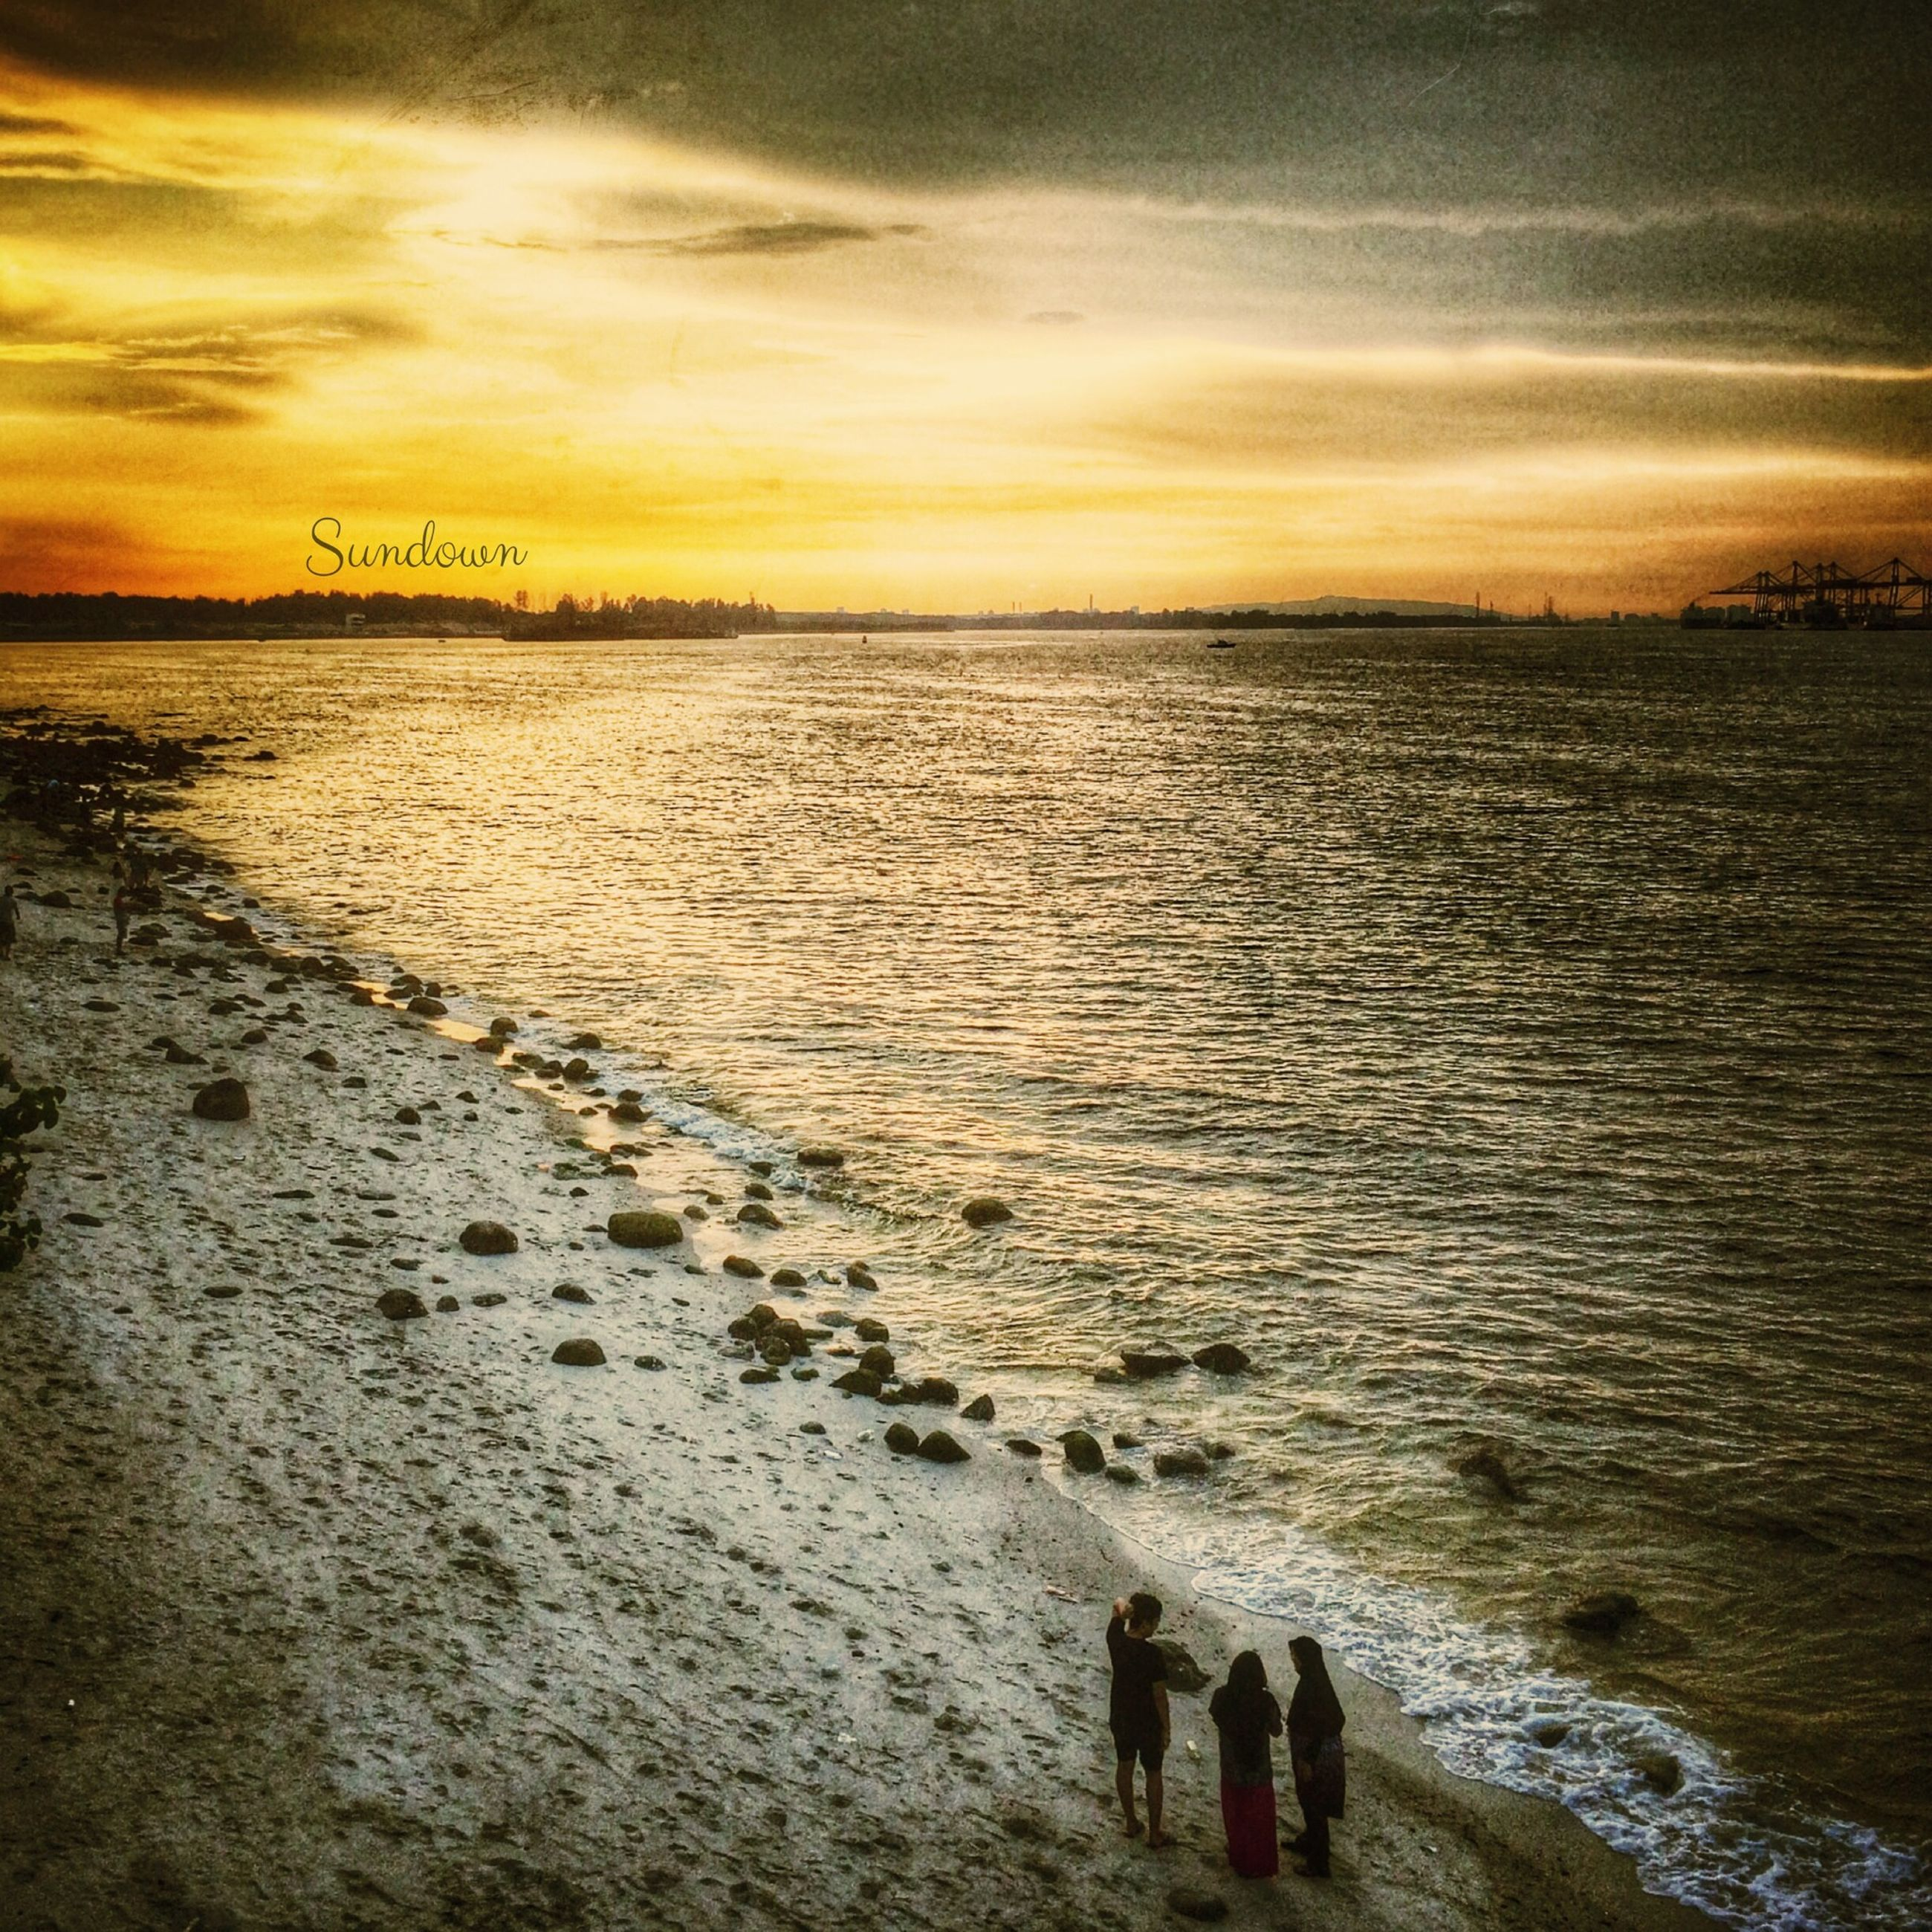 sea, water, sunset, sky, horizon over water, beach, scenics, shore, cloud - sky, beauty in nature, tranquil scene, tranquility, wave, nature, silhouette, idyllic, leisure activity, orange color, lifestyles